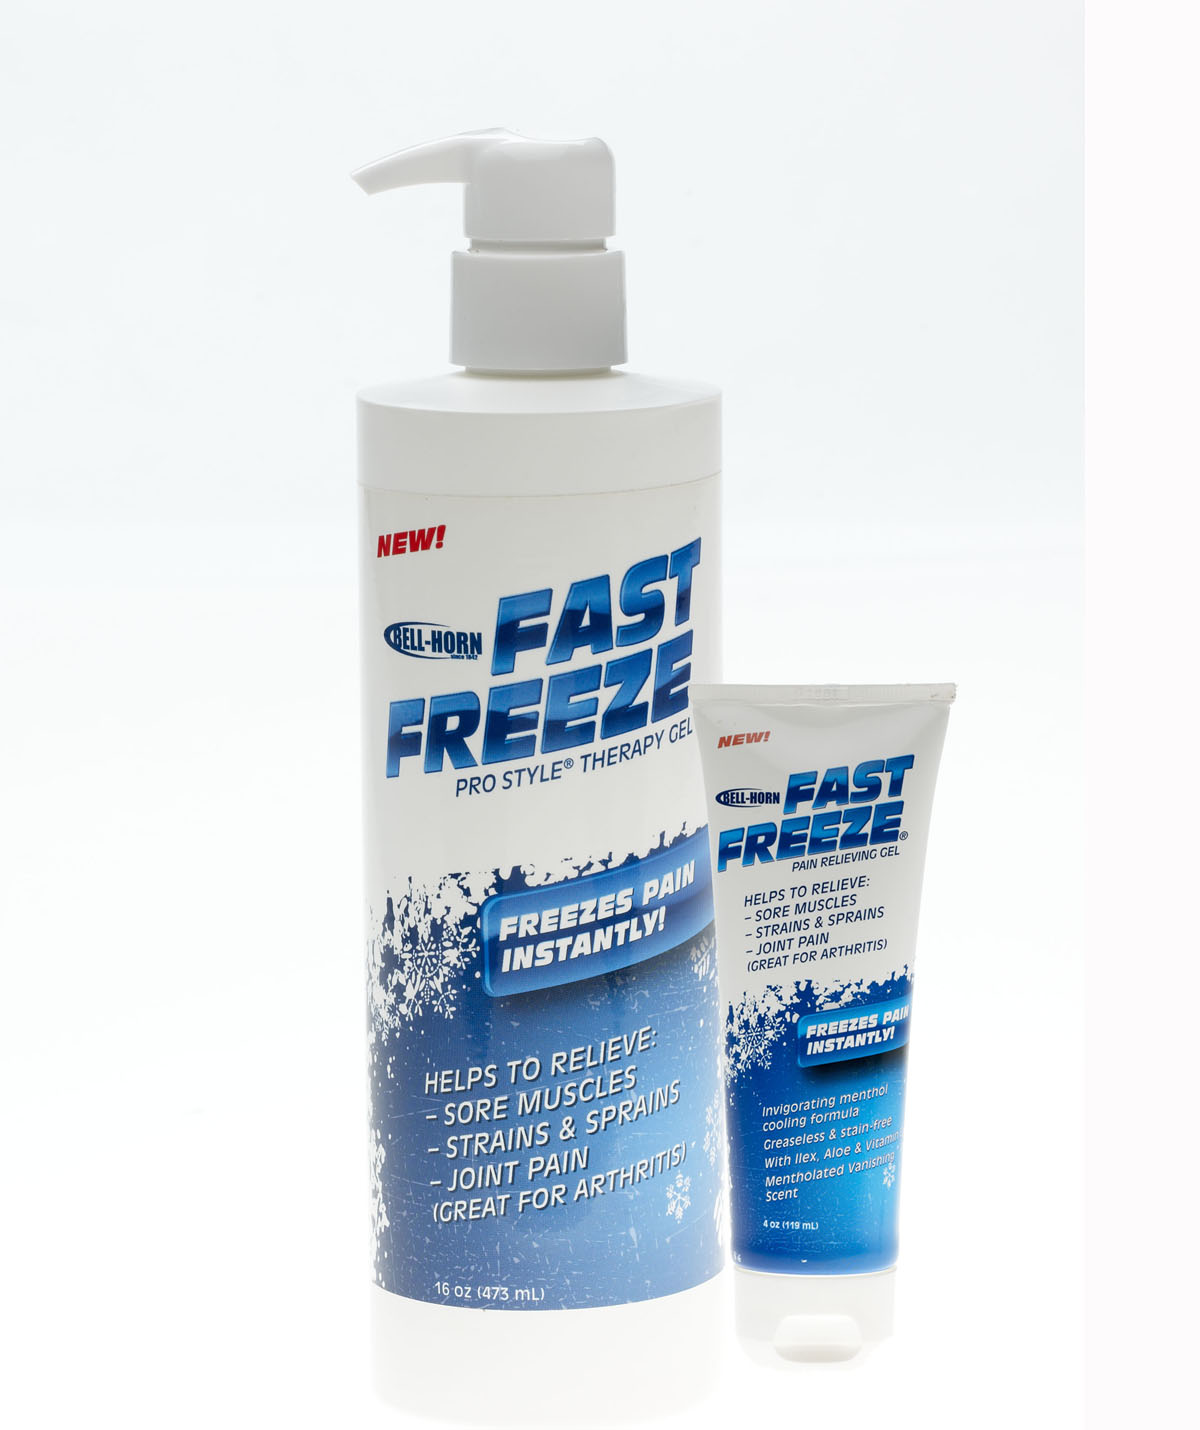 Fast Freeze Cold Therapy Pain Relief Gel, 4 Oz. Tube, 12/Case